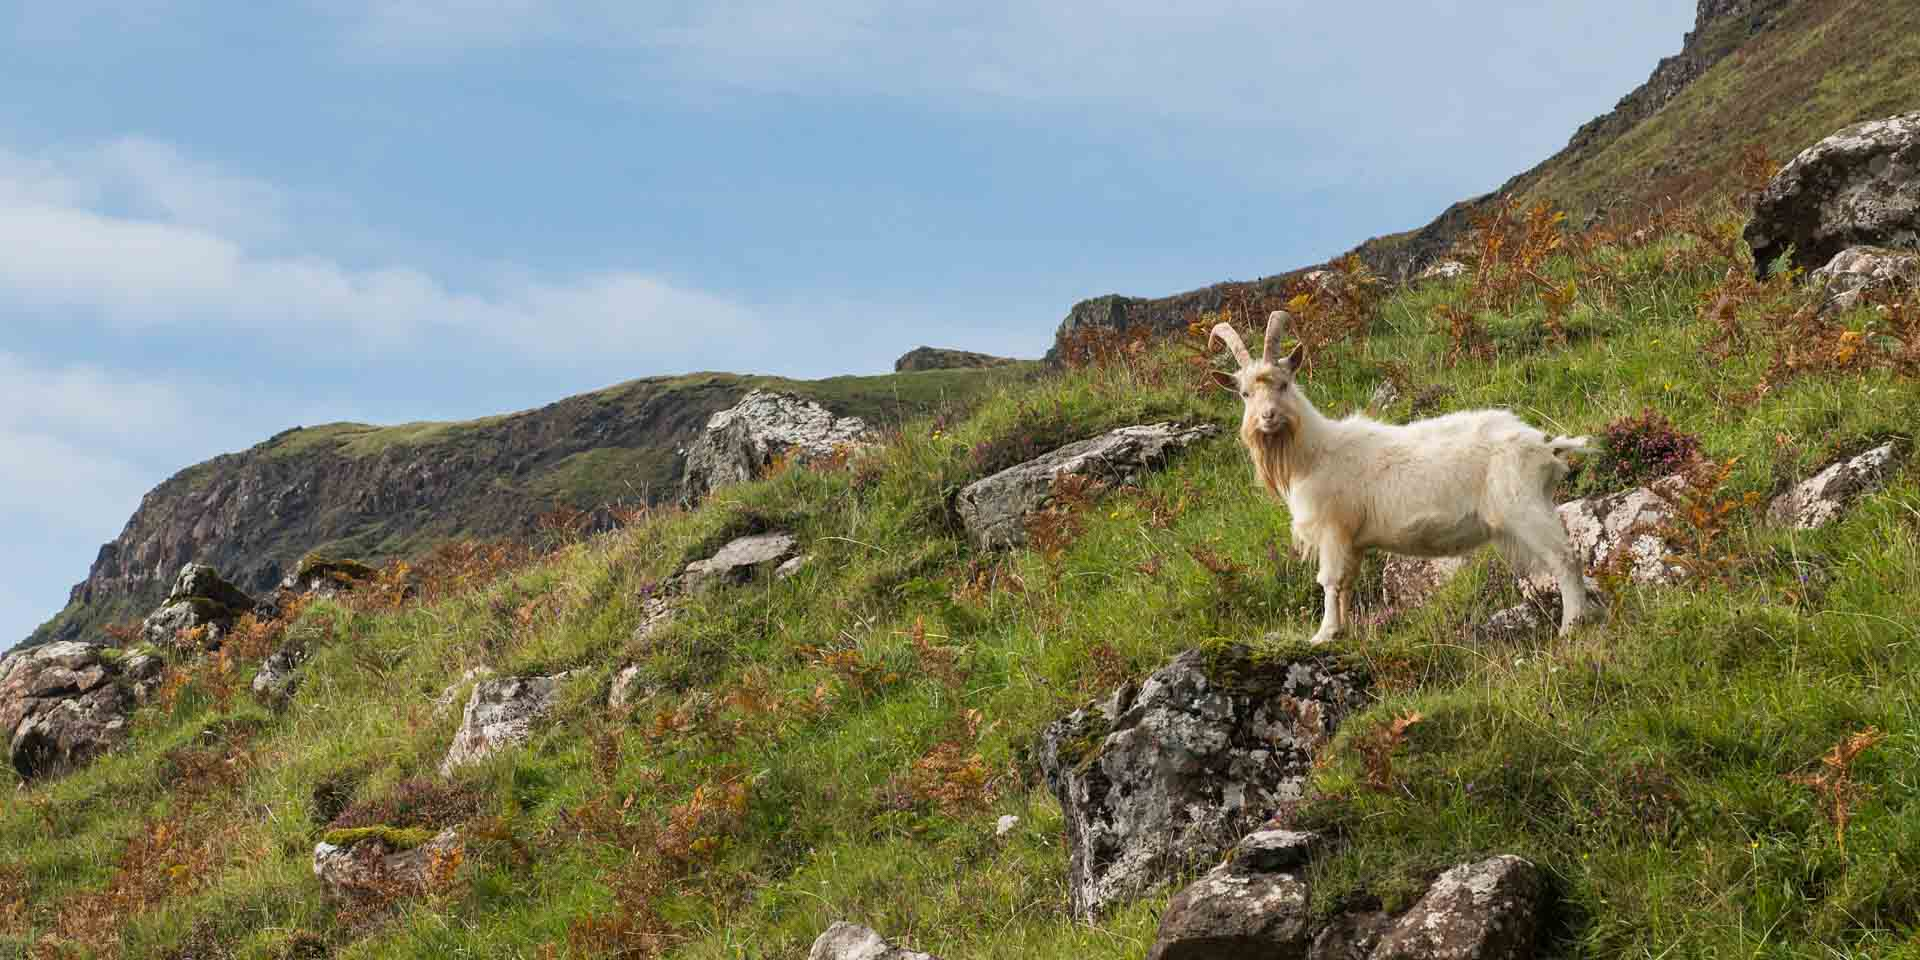 Freal goats on the Pennyghael Estate on the Isle of Mull, Scotland